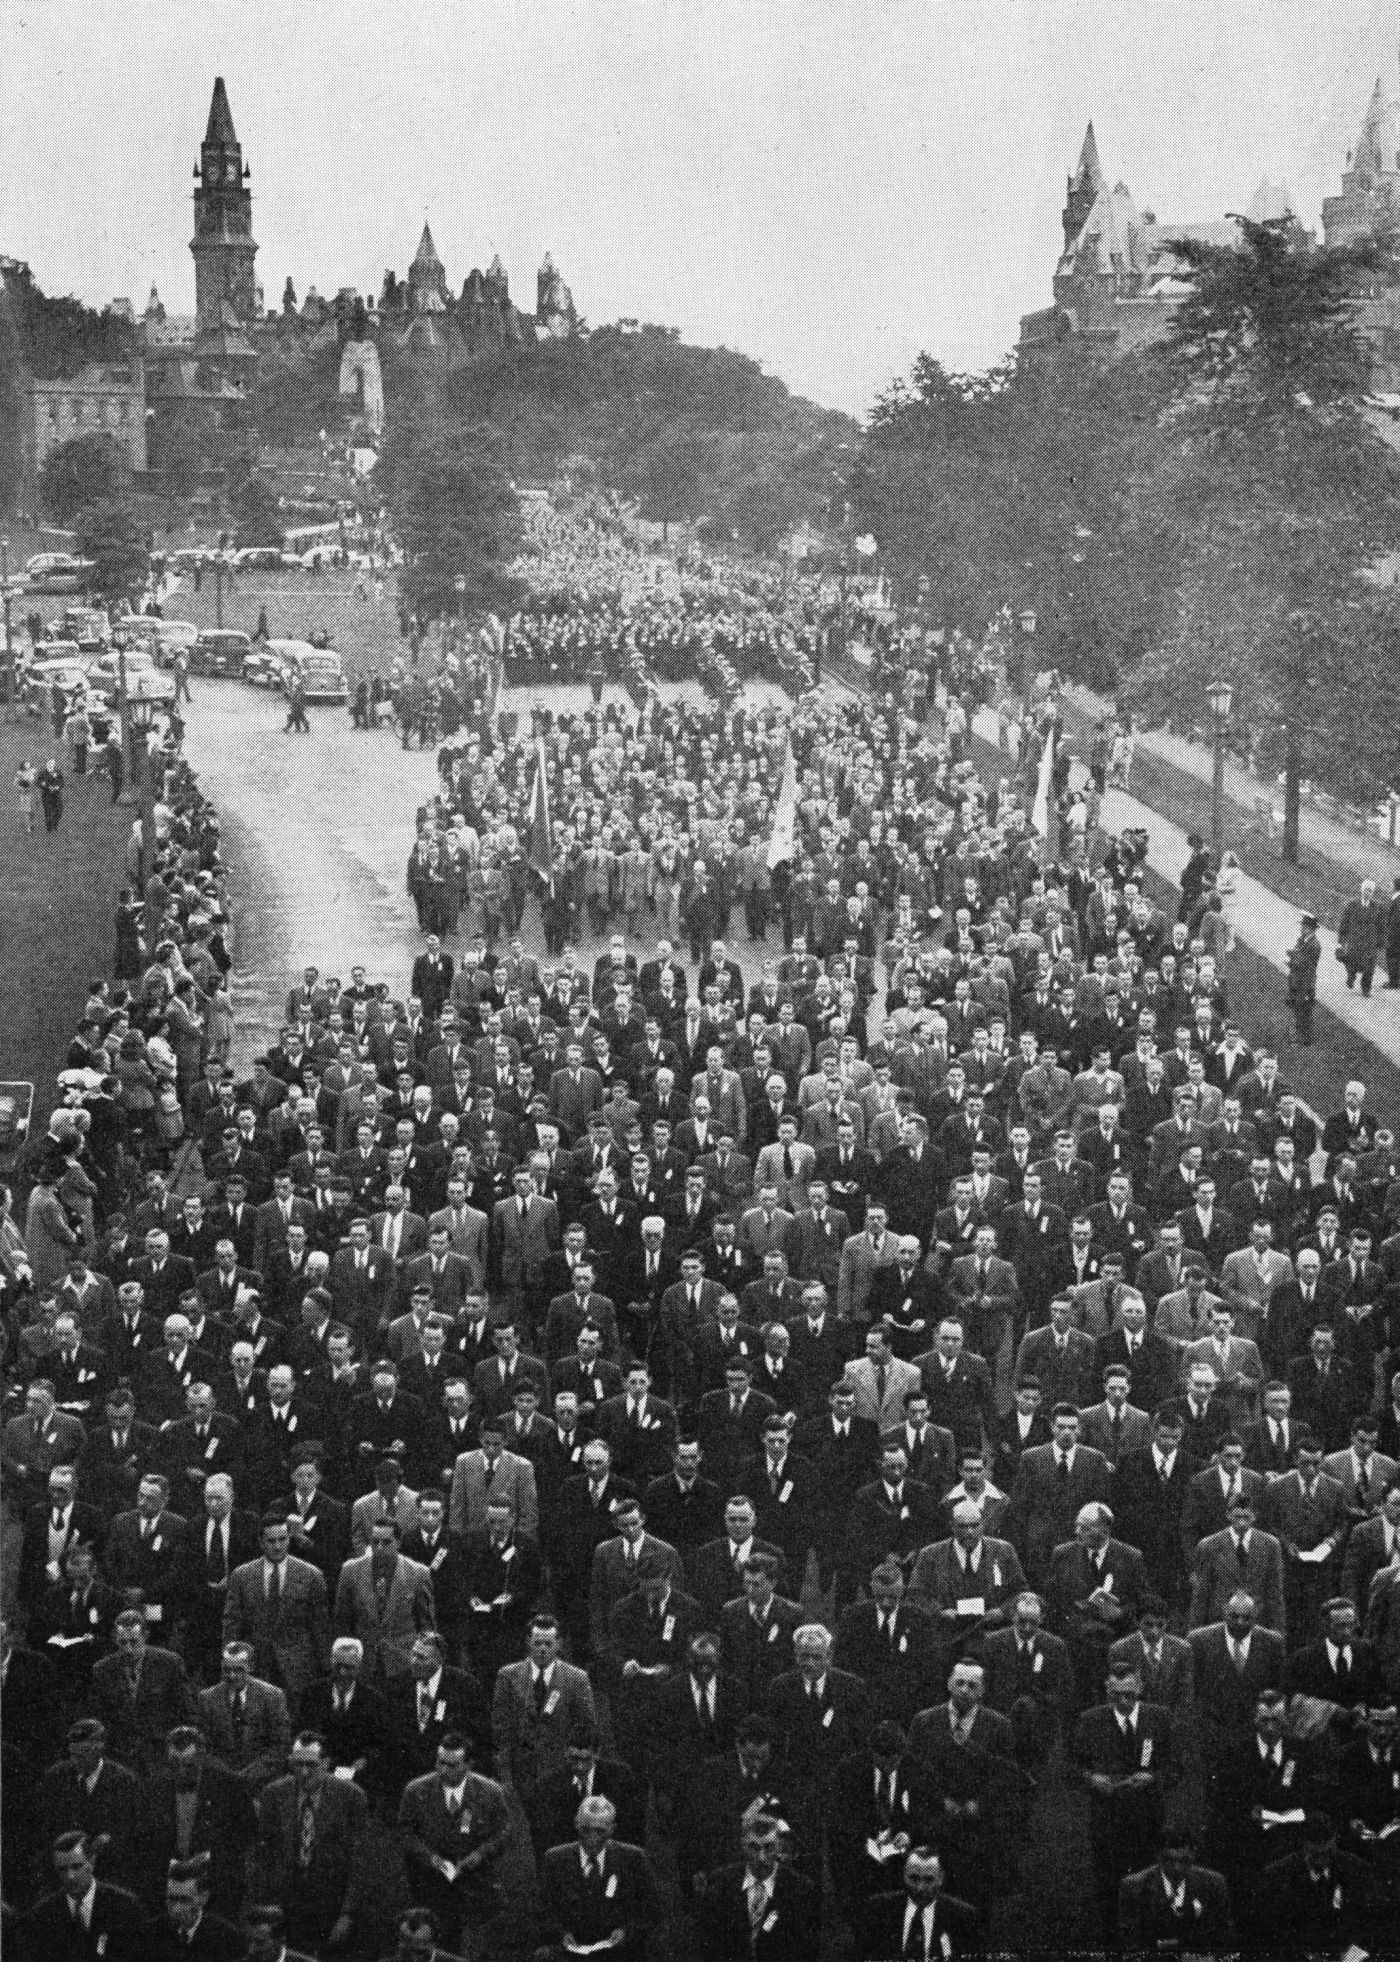 Black and white photograph of a grand procession. Men in suits and ties are walking down a roadway, some holding booklets, others holding flags. Spectators are massed along the route. In the distance  behind them, buildings of Parliament.